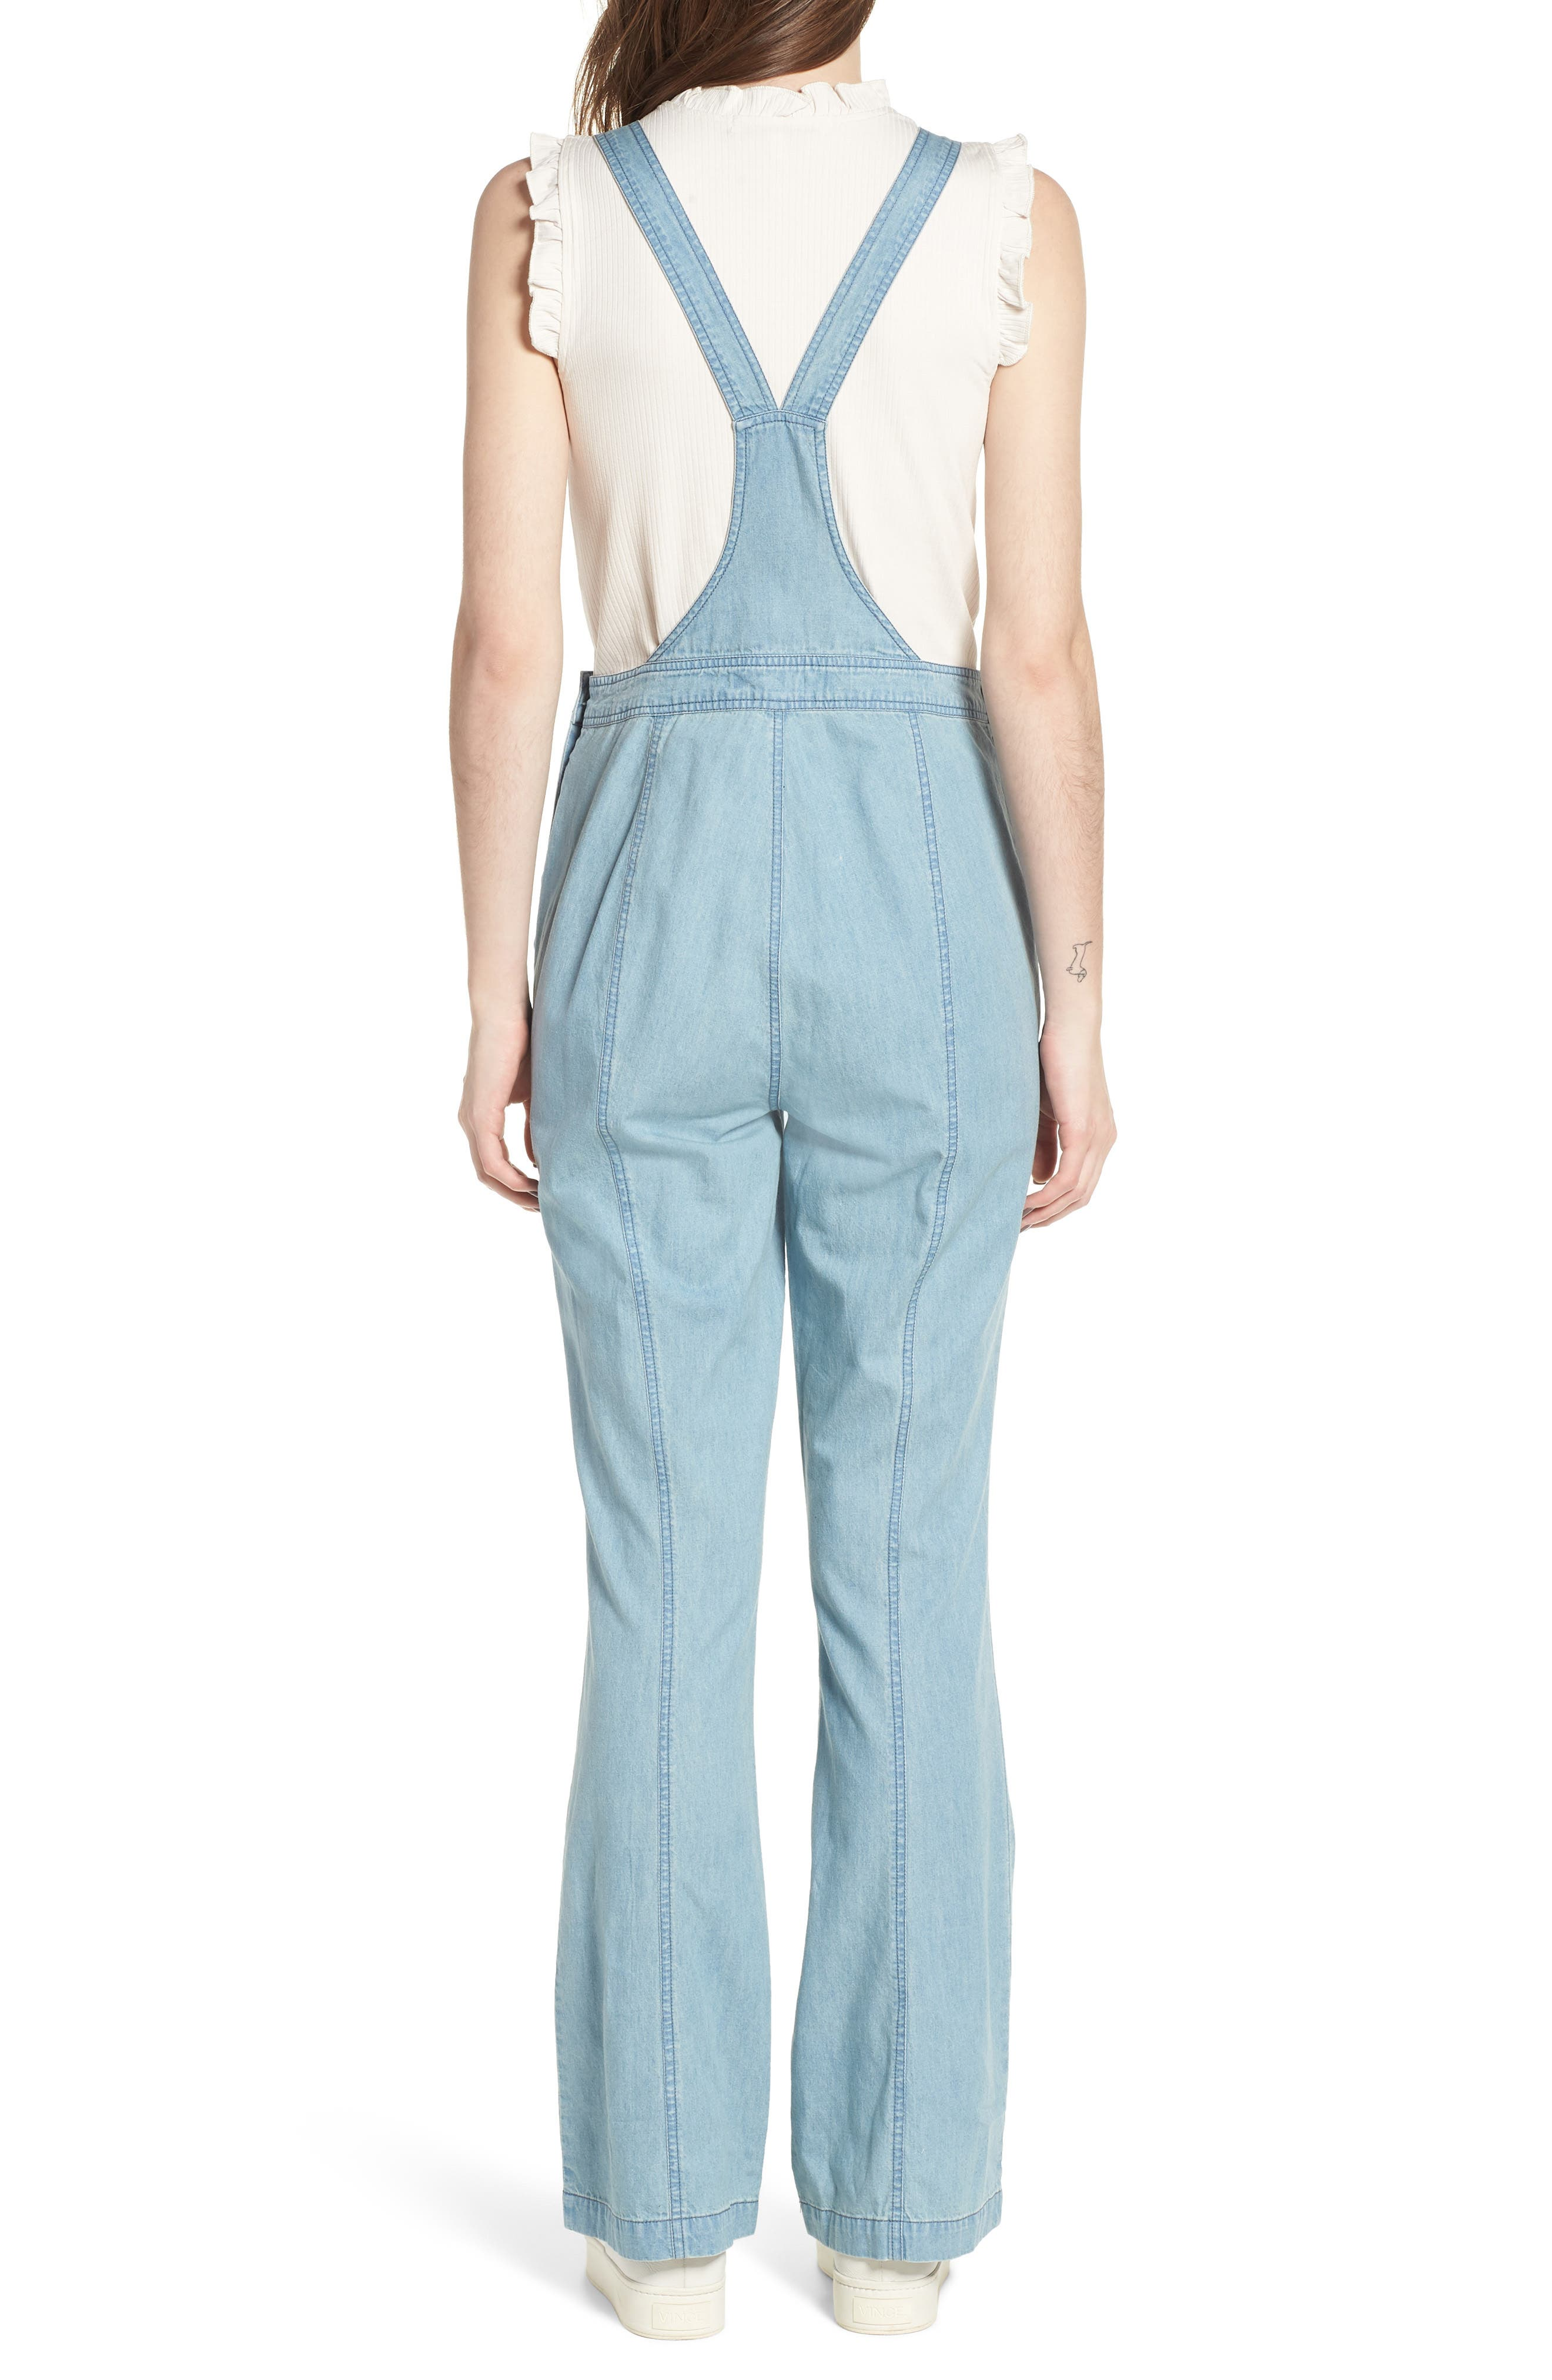 Meliani Denim Overalls,                             Alternate thumbnail 2, color,                             Denim